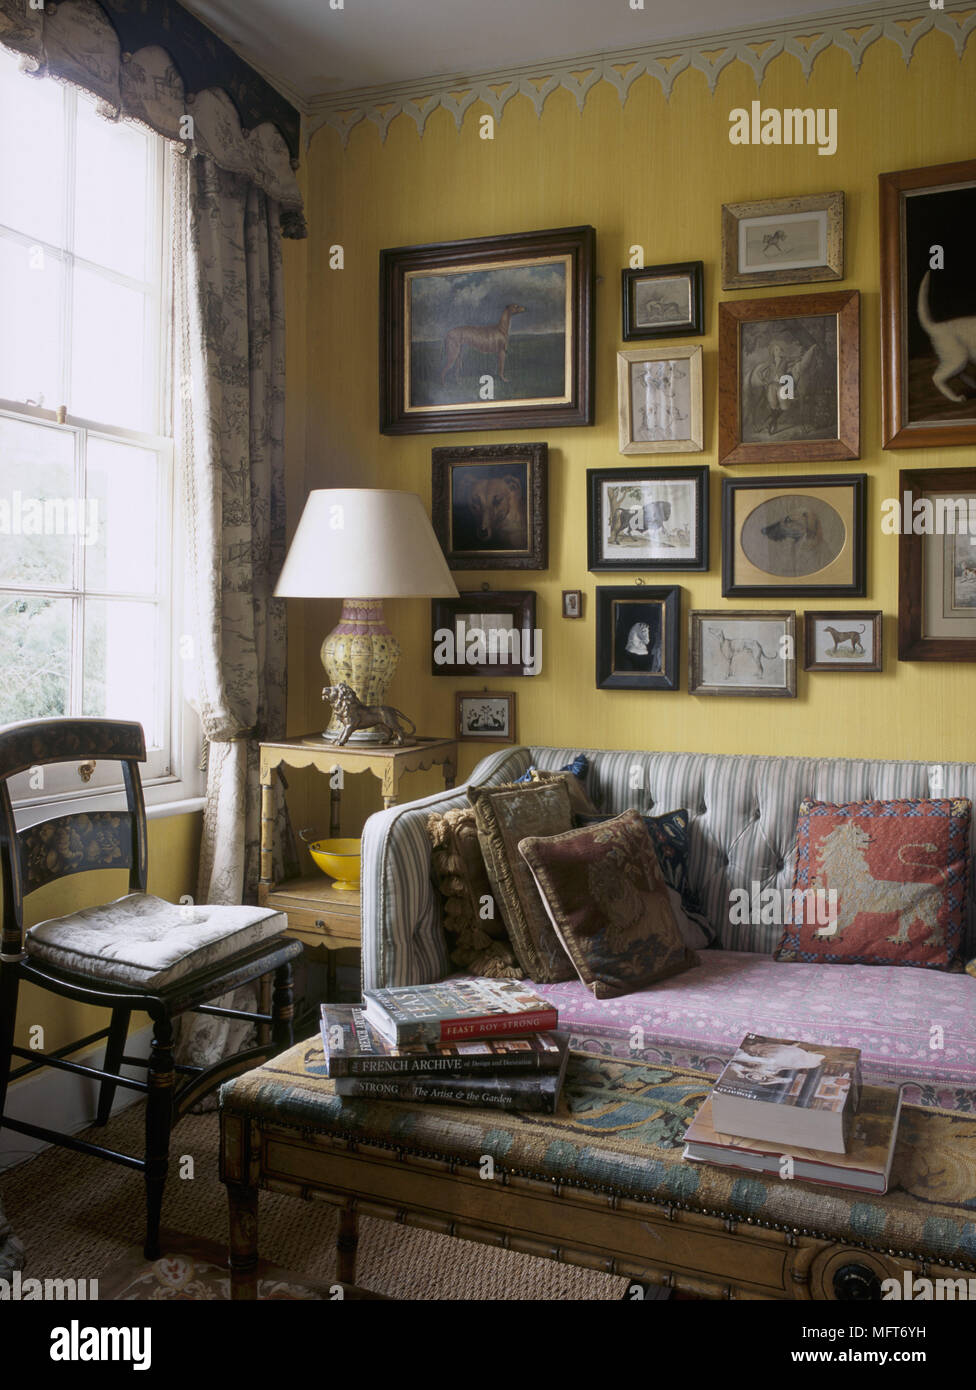 Traditional Furniture Paint Effects Stock Photos & Traditional ...